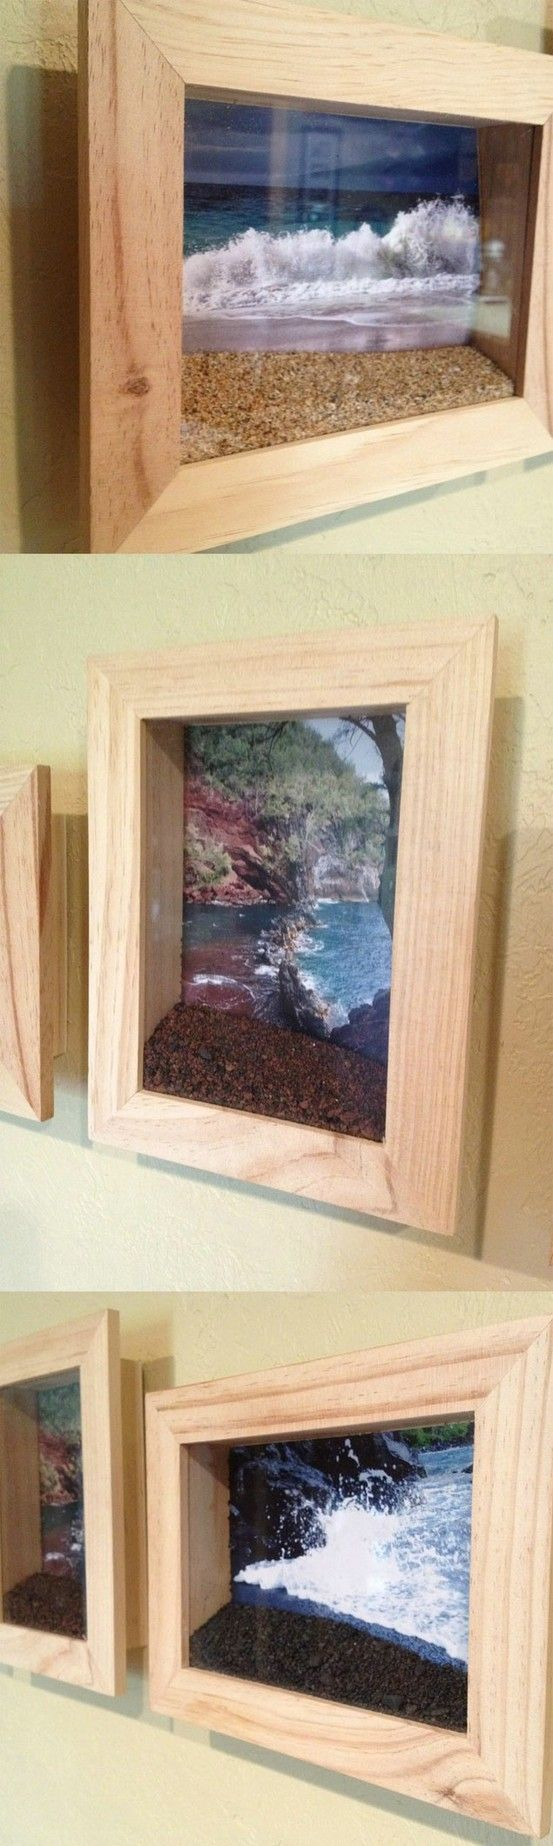 Put a picture of the beach you visited in a shadow box frame and fill the bottom with sand from that beach. BRILLIANT!!